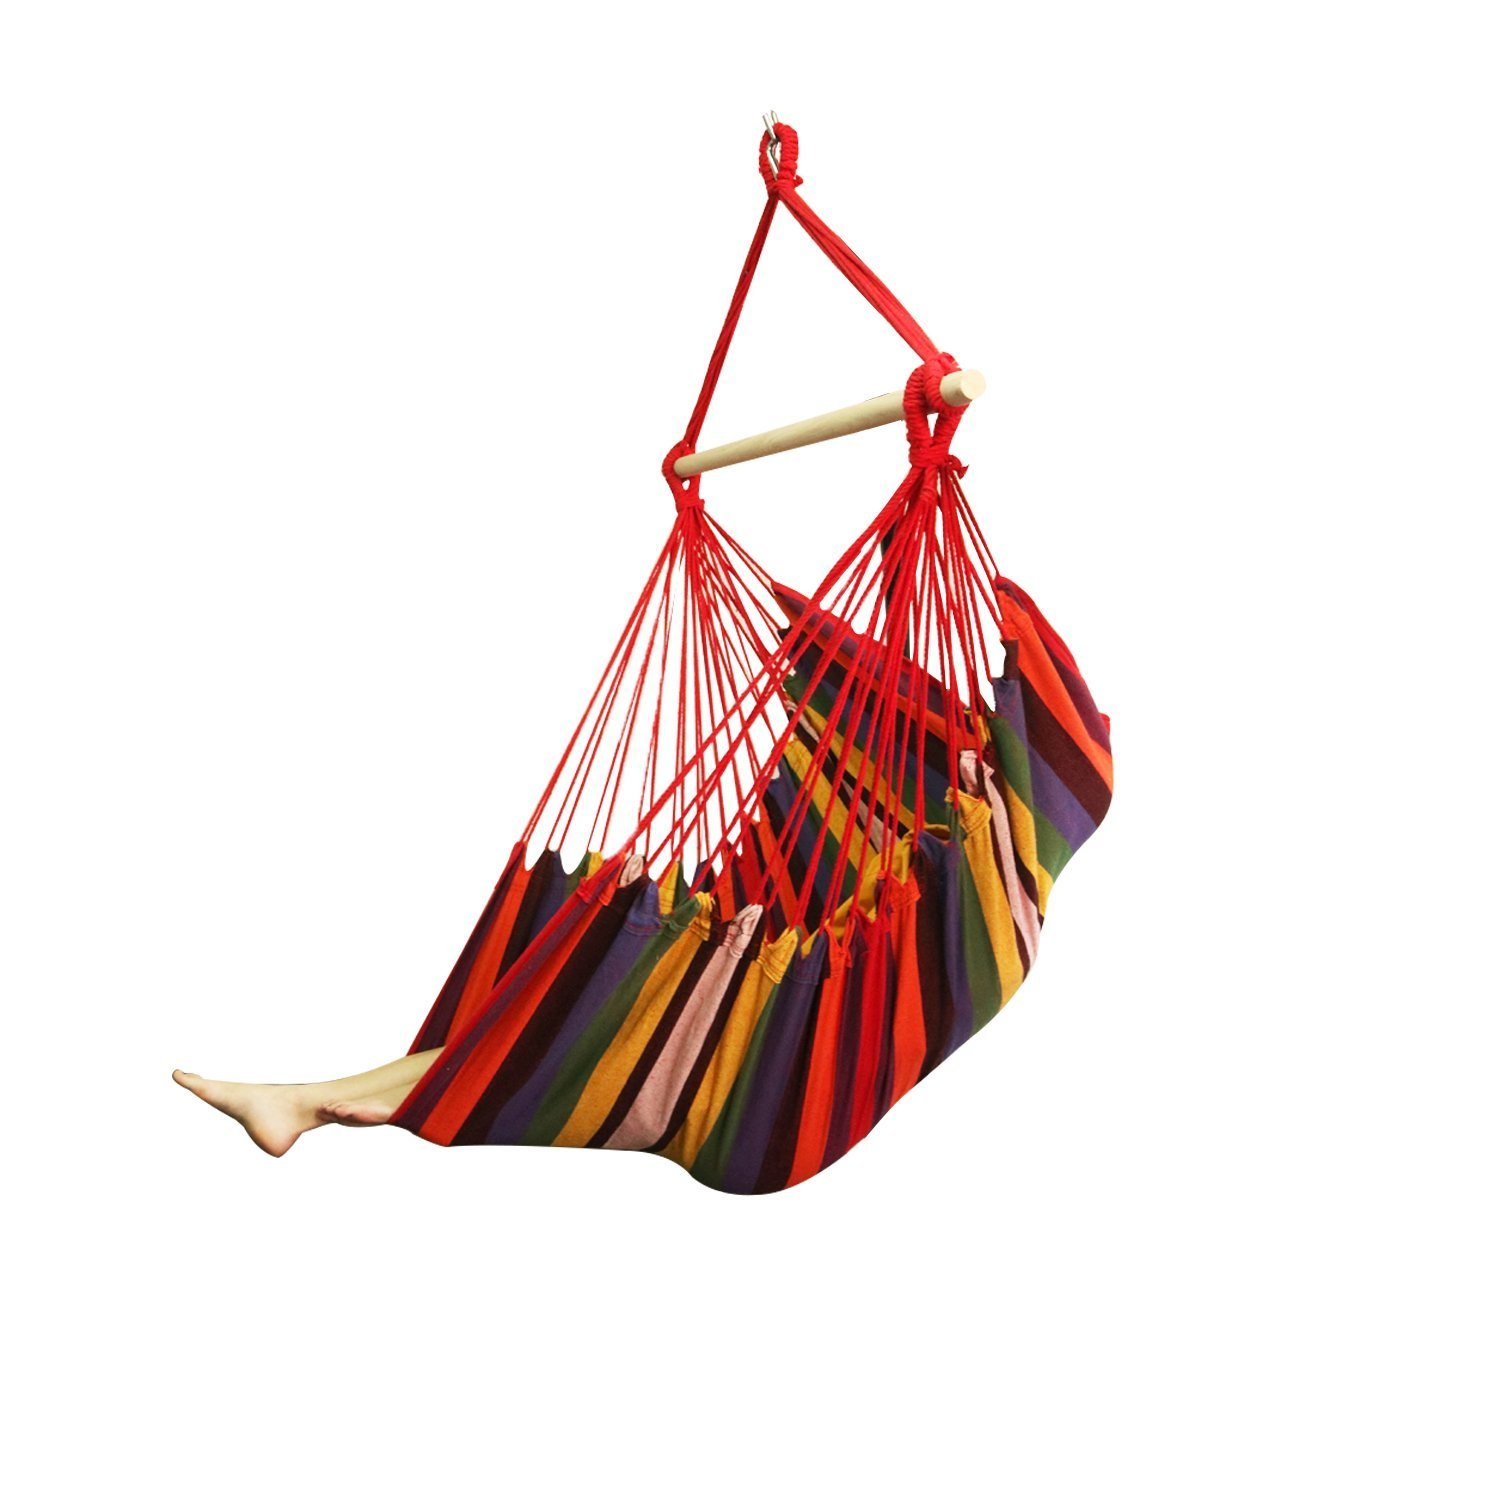 EverKing Large Brazilian Hammock Chair - Quality Cotton Weave for Superior Comfort & Durability - Extra Long Bed - Hanging Chair for Yard, Bedroom, Porch, Indoor, Outdoor